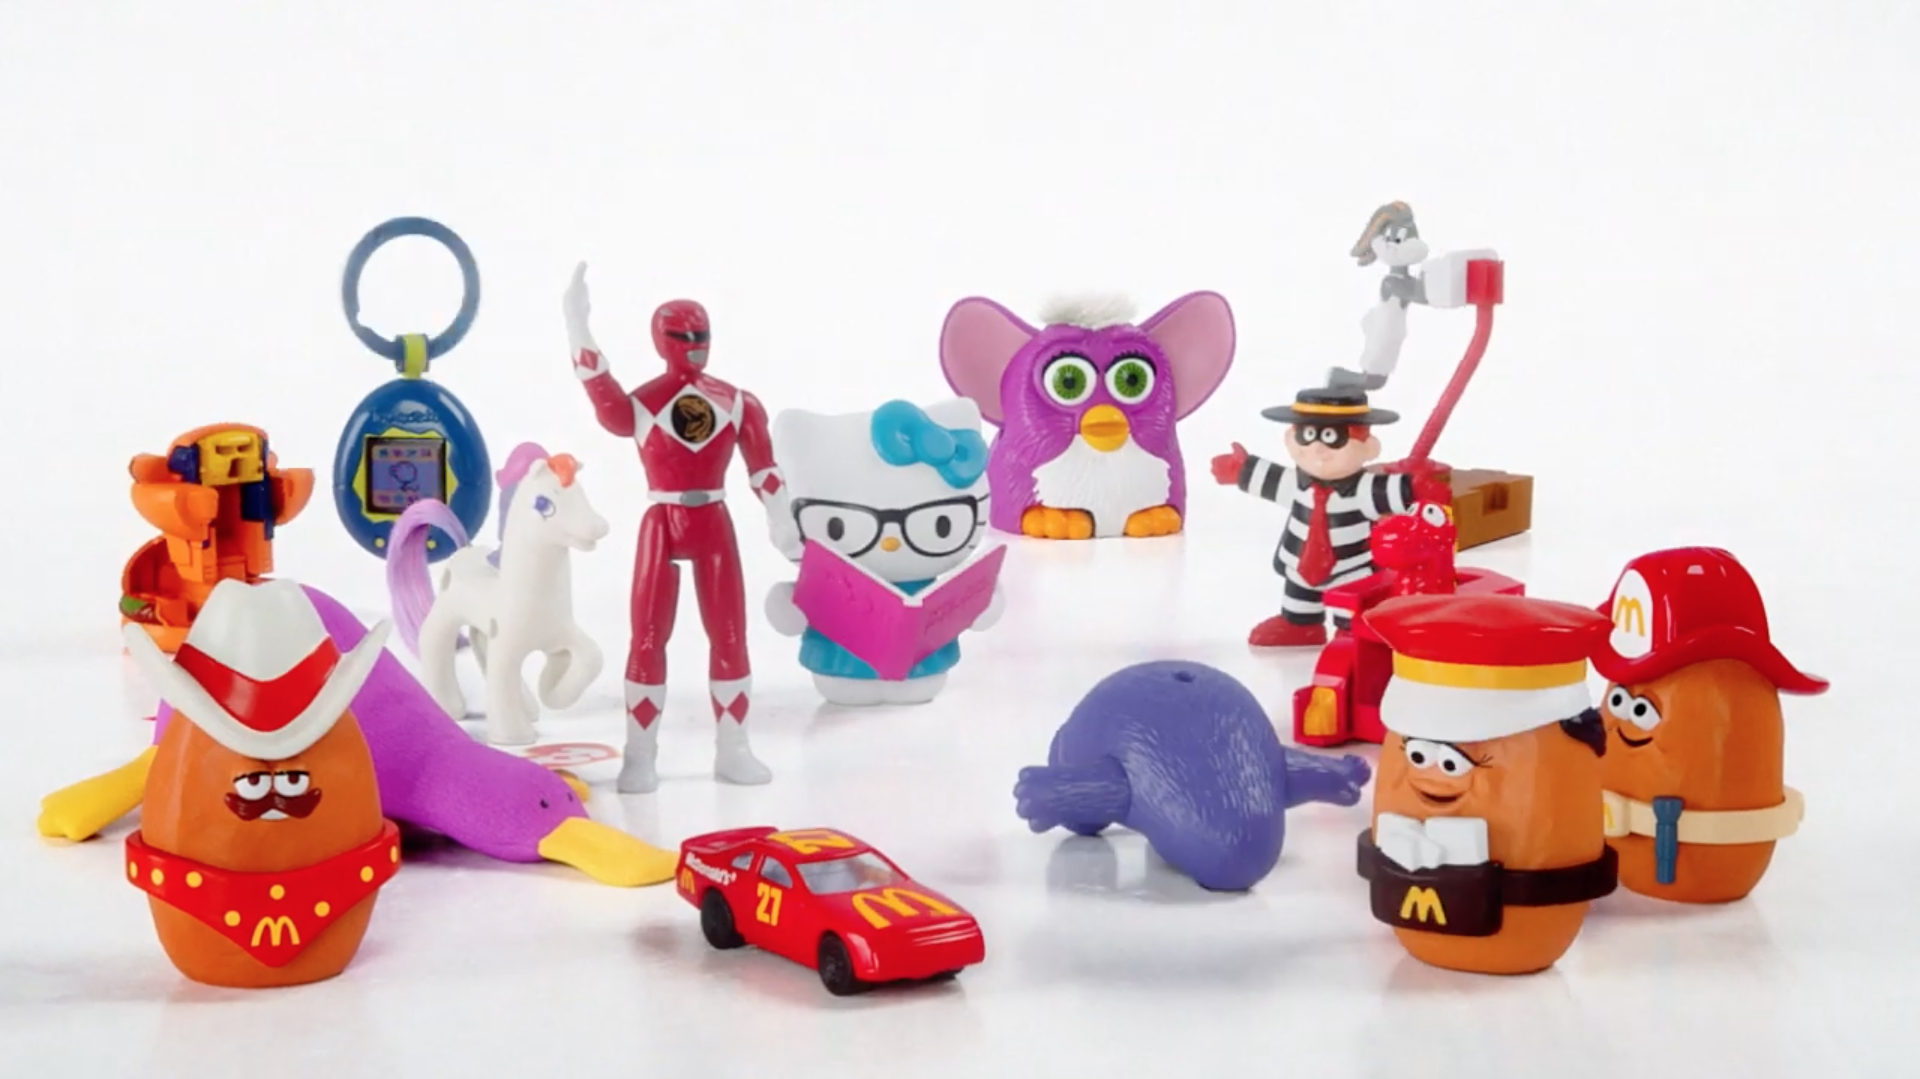 We're Lovin' It: McDonald's Is Bringing Back Retro '90s Happy Meal Toys